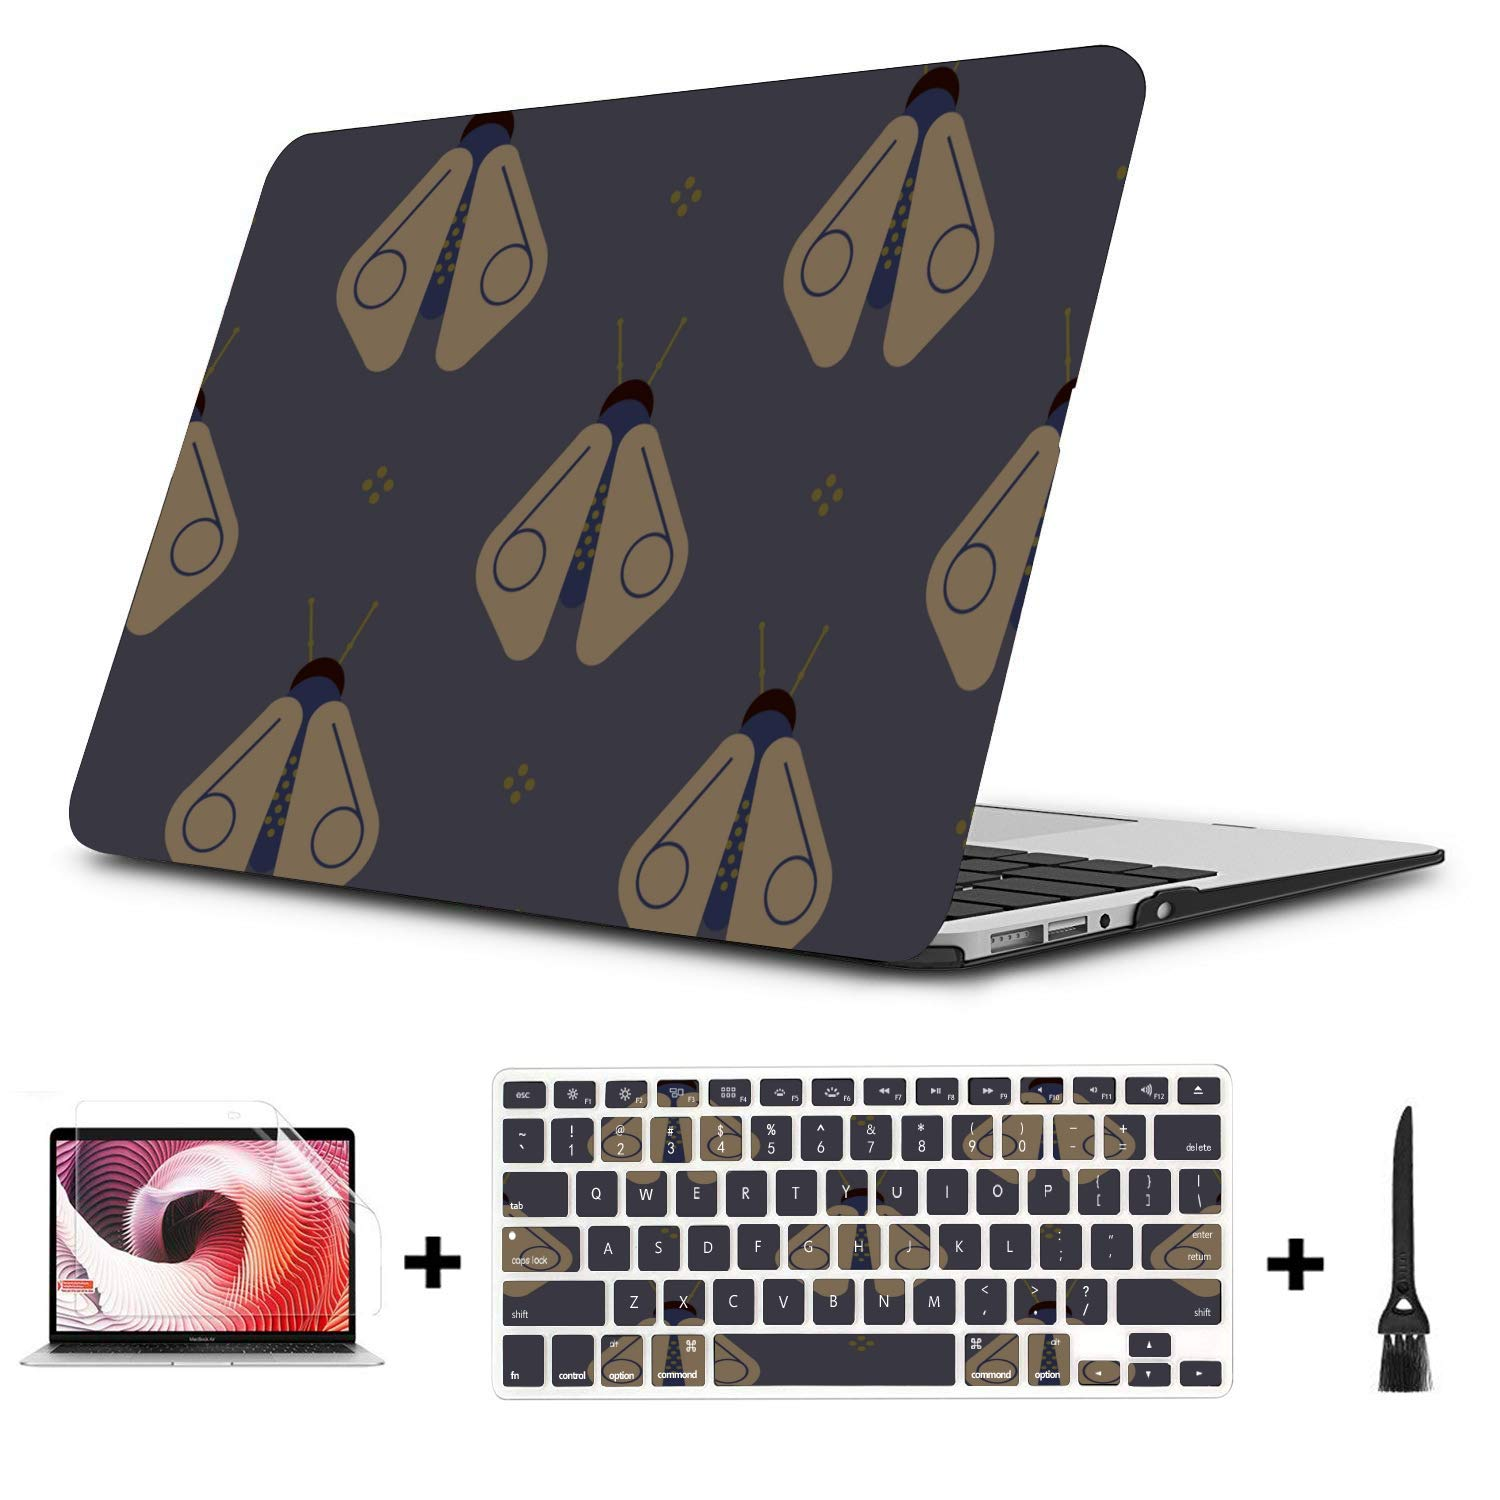 15 Inch MacBook Case Shiny Night Romantic Insects Firefly Plastic Hard Shell Compatible Mac Air 11 Pro 13 15 MacBook Pro A1708 Case Protection for MacBook 2016-2019 Version